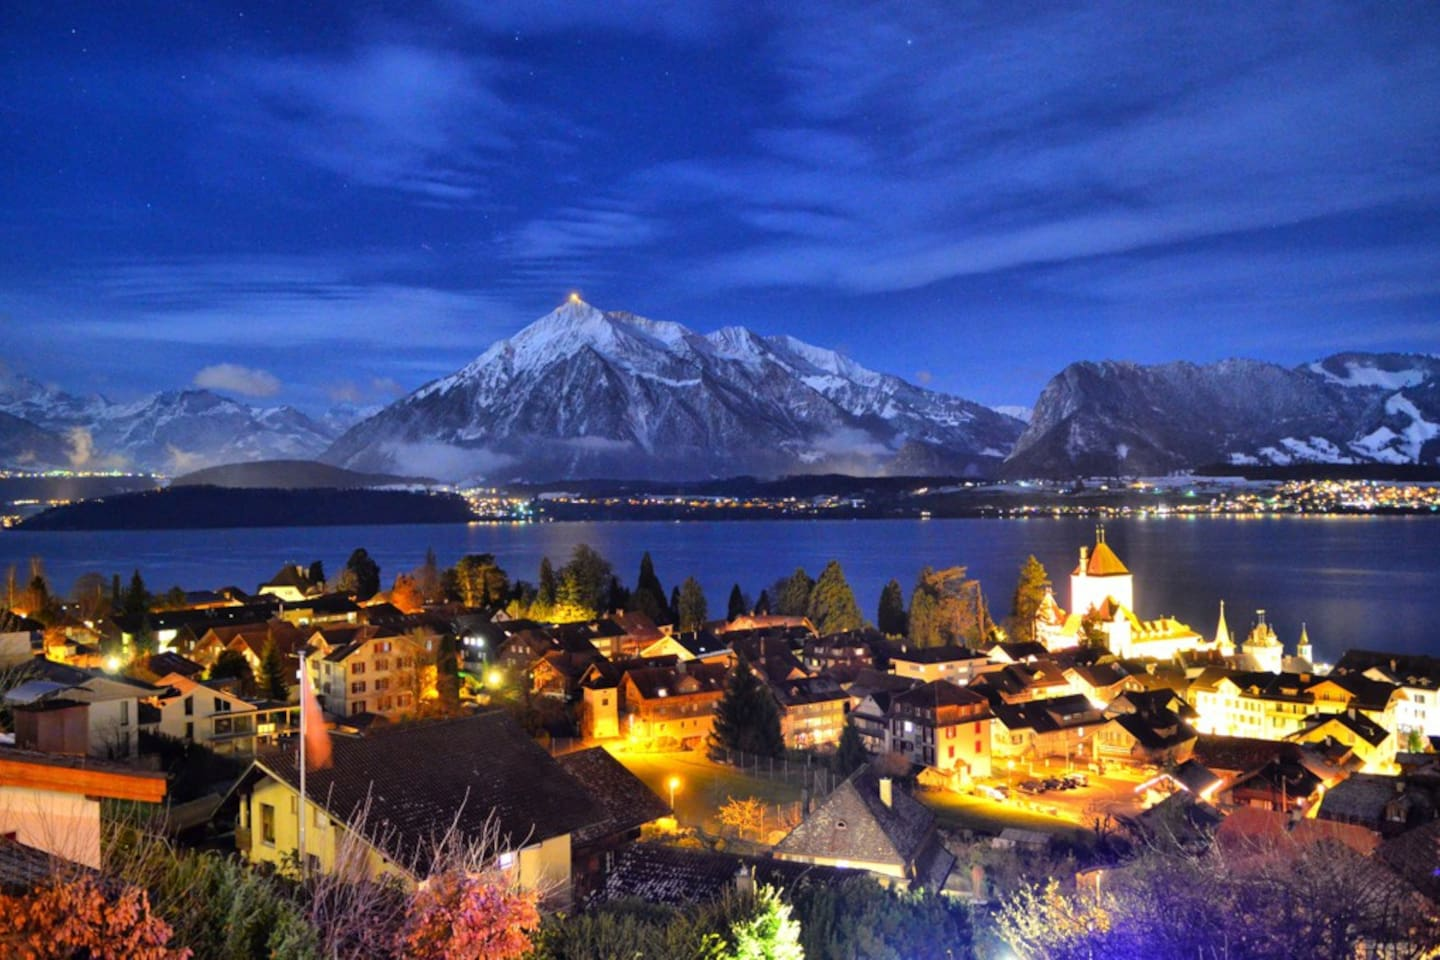 Romantic night view, overlooking Oberhofen, the castle, the lake and to the mountains.